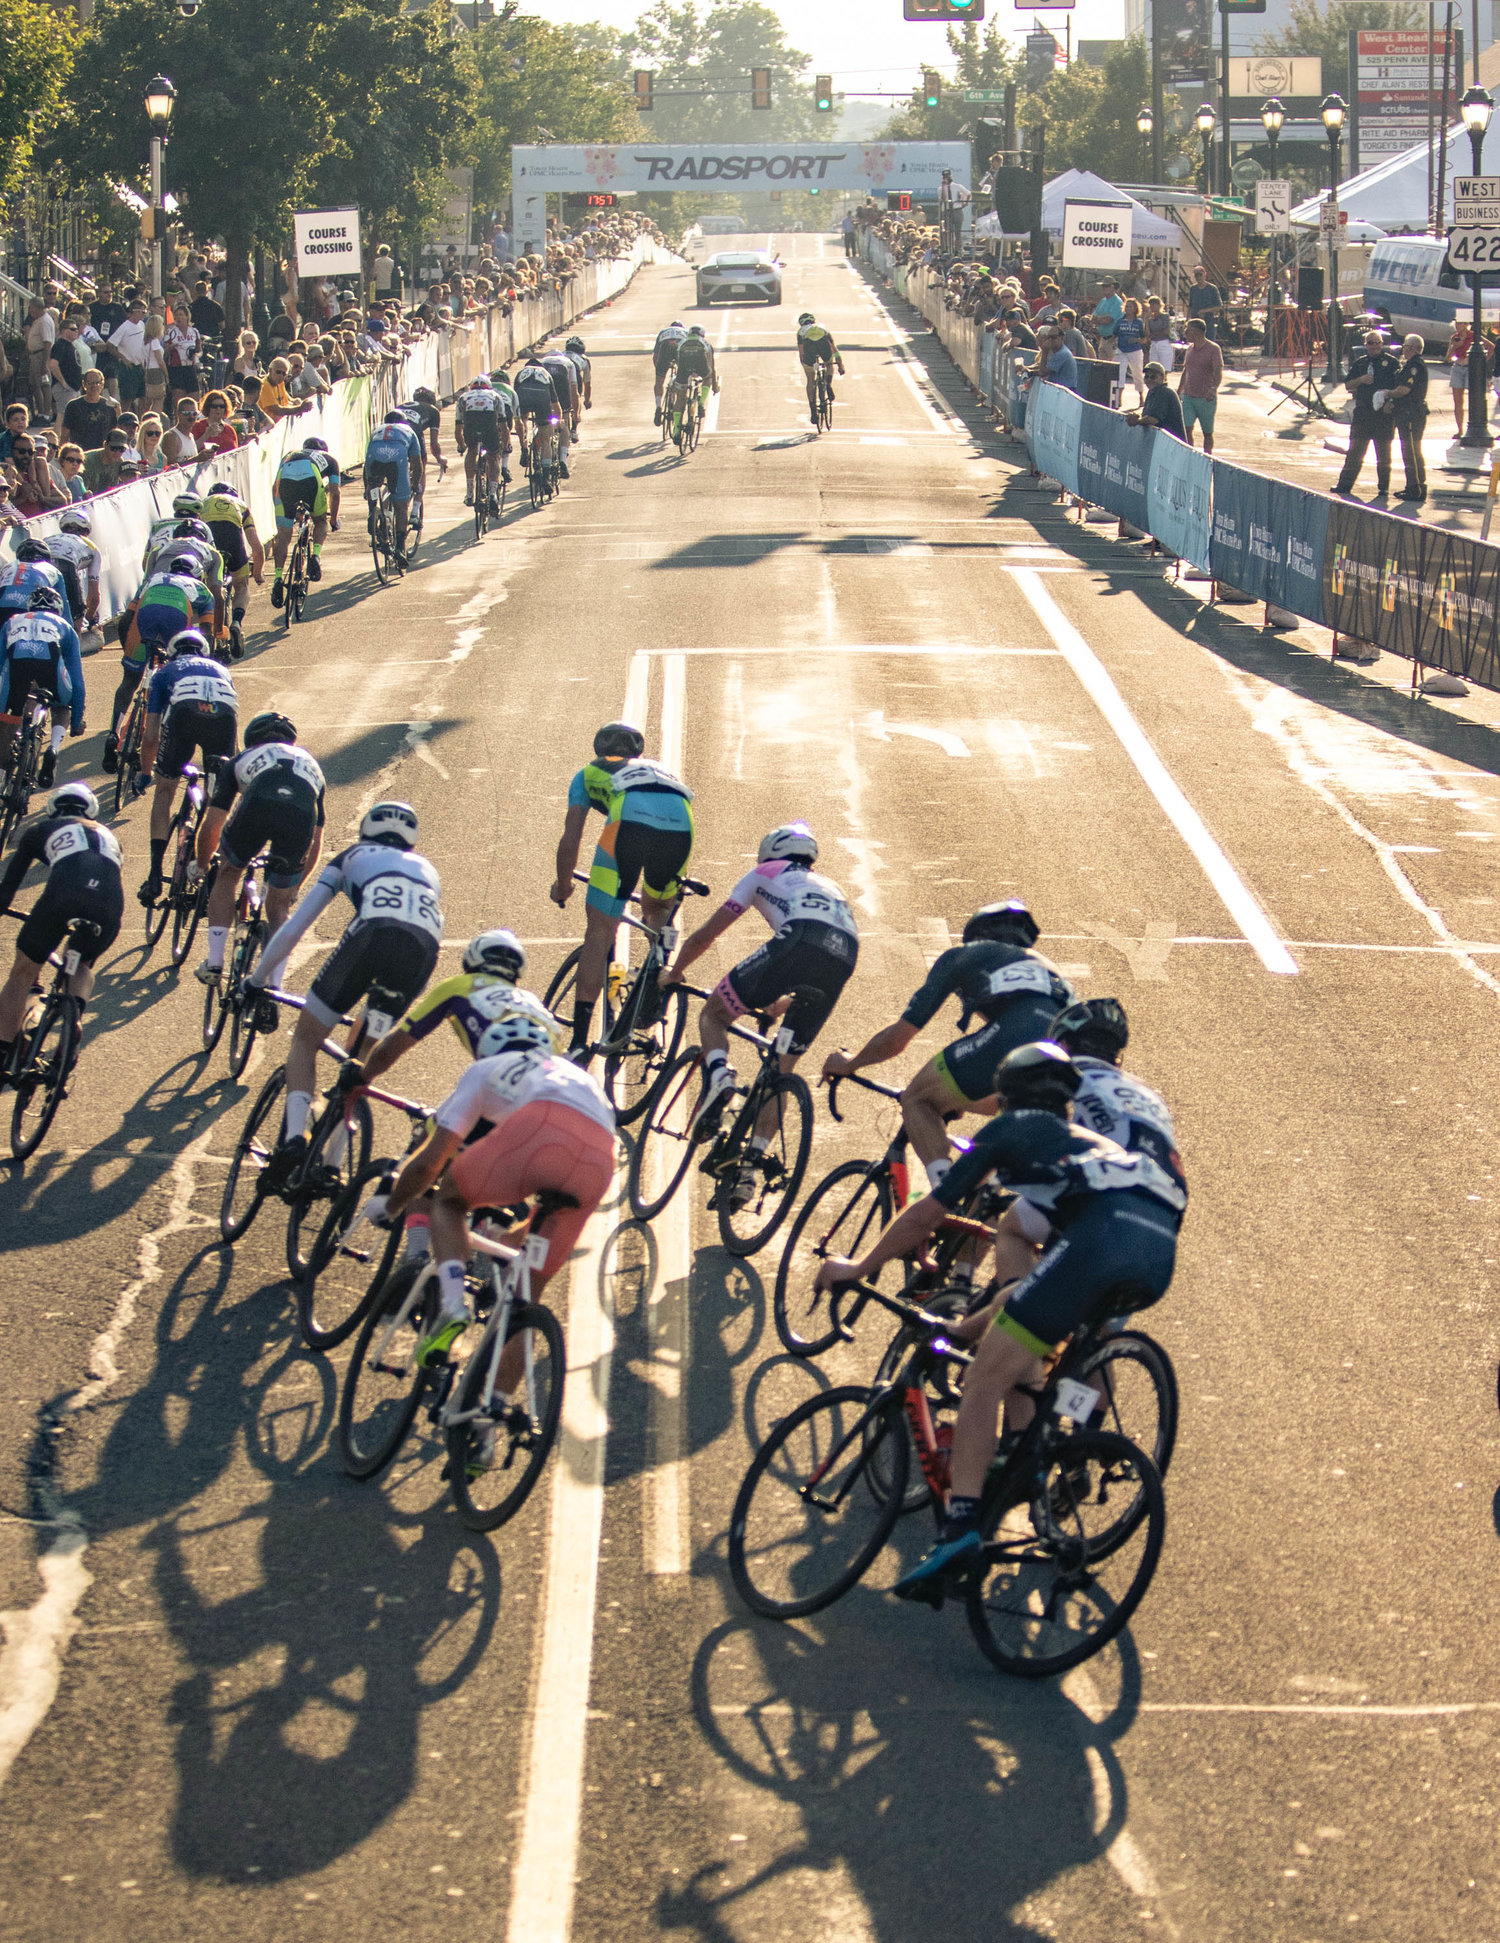 The Next Generation of Bike Racing? An Introduction to